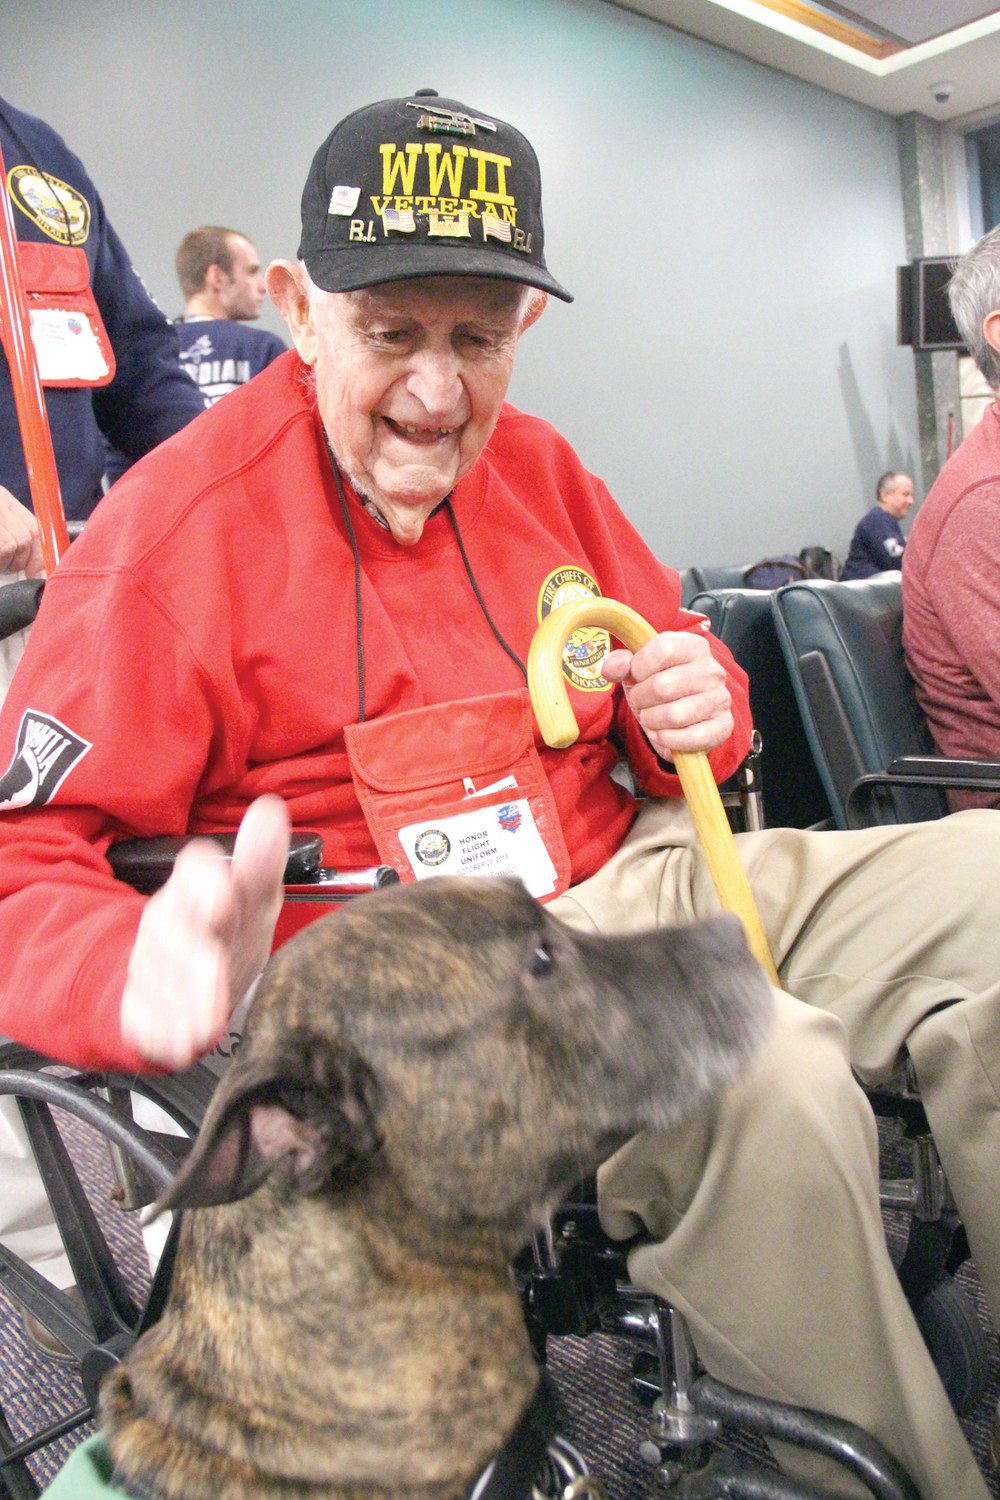 COMPANION FOR A MOMENT: WWII veterans Sanford Tanner of Warwick greets Teddy of the PVD Pups program while waiting for the departure of Saturday's flight.